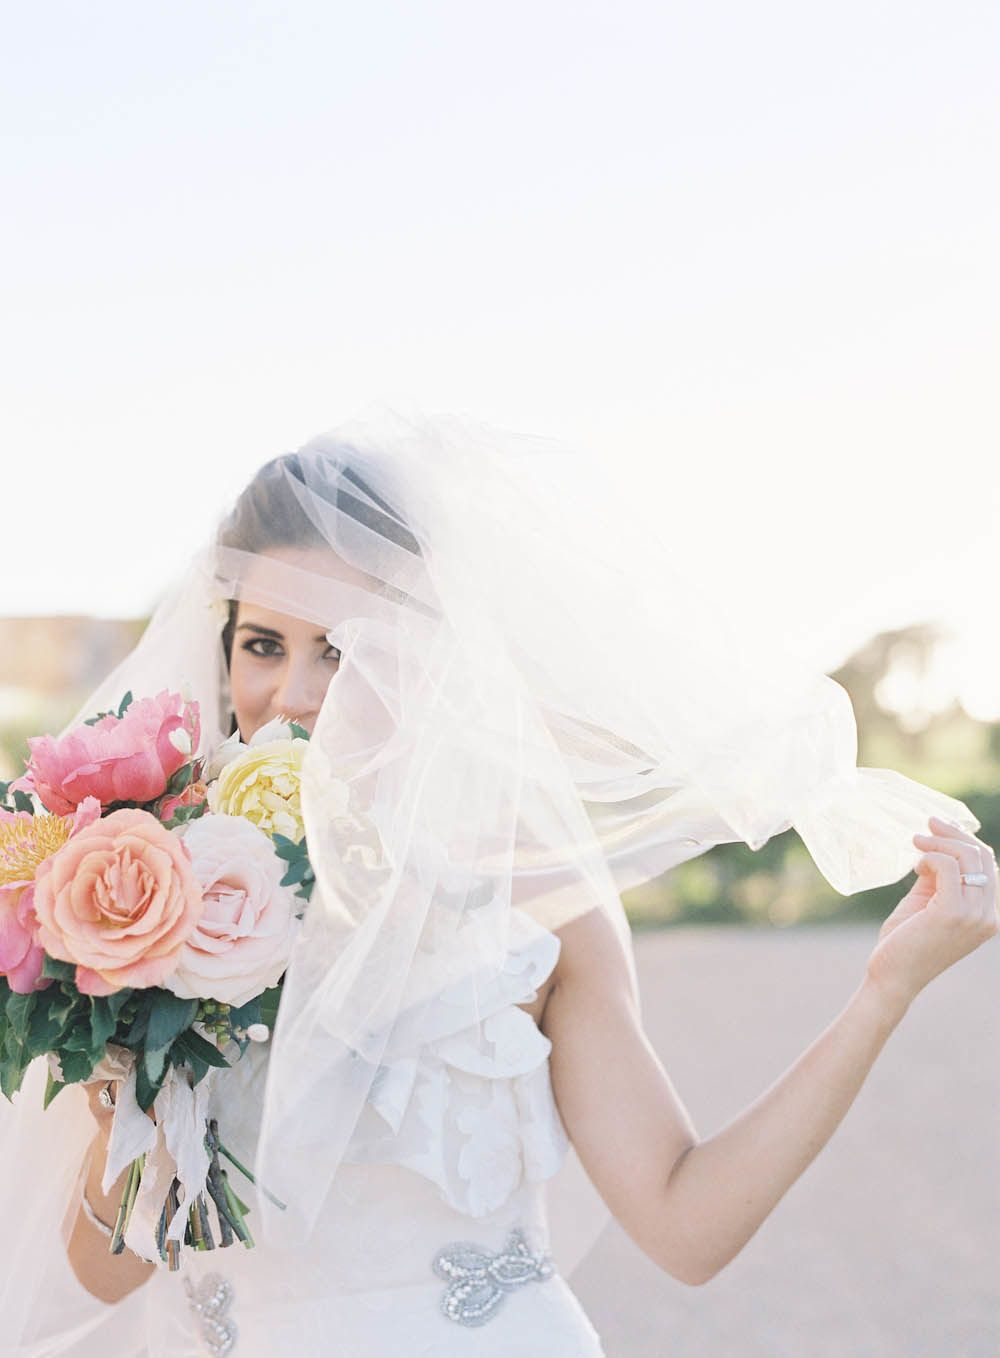 a gorgeous bride with a bit of sass #veil Photography: Jen Huang Photography - jenhuangphotography.com  Read More: http://www.stylemepretty.com/2014/09/08/modern-tuscan-inspired-wedding-with-pops-of-color/